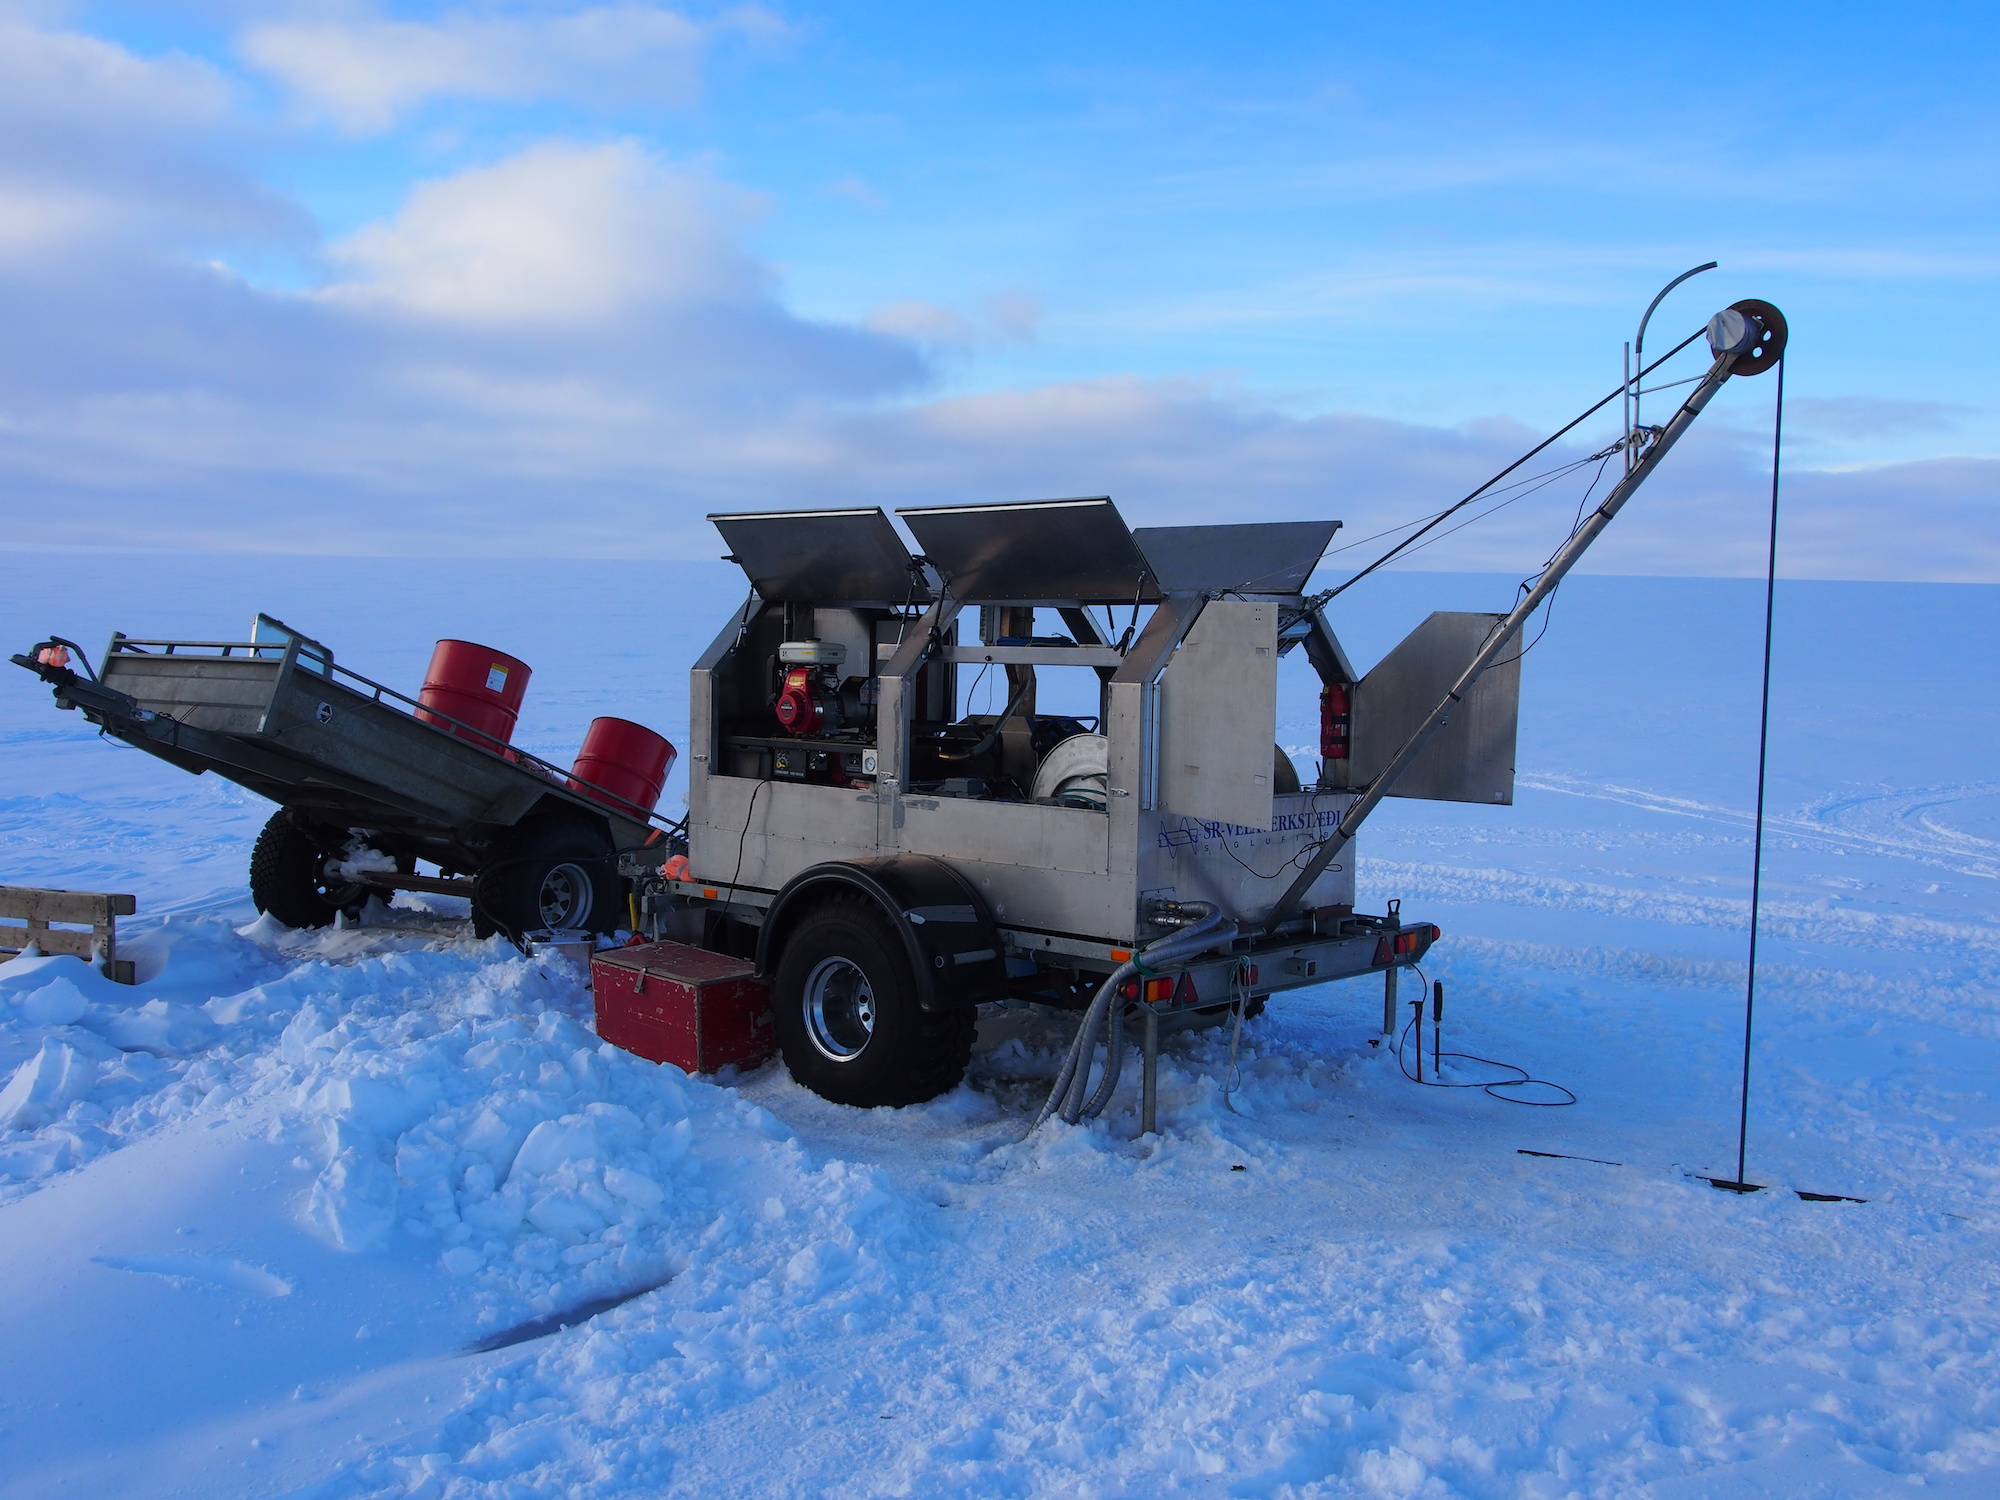 The hot water drill used to drill through the glacier to the subglacial lakes. Open, frozen landscape of the glacier surrounds the drill